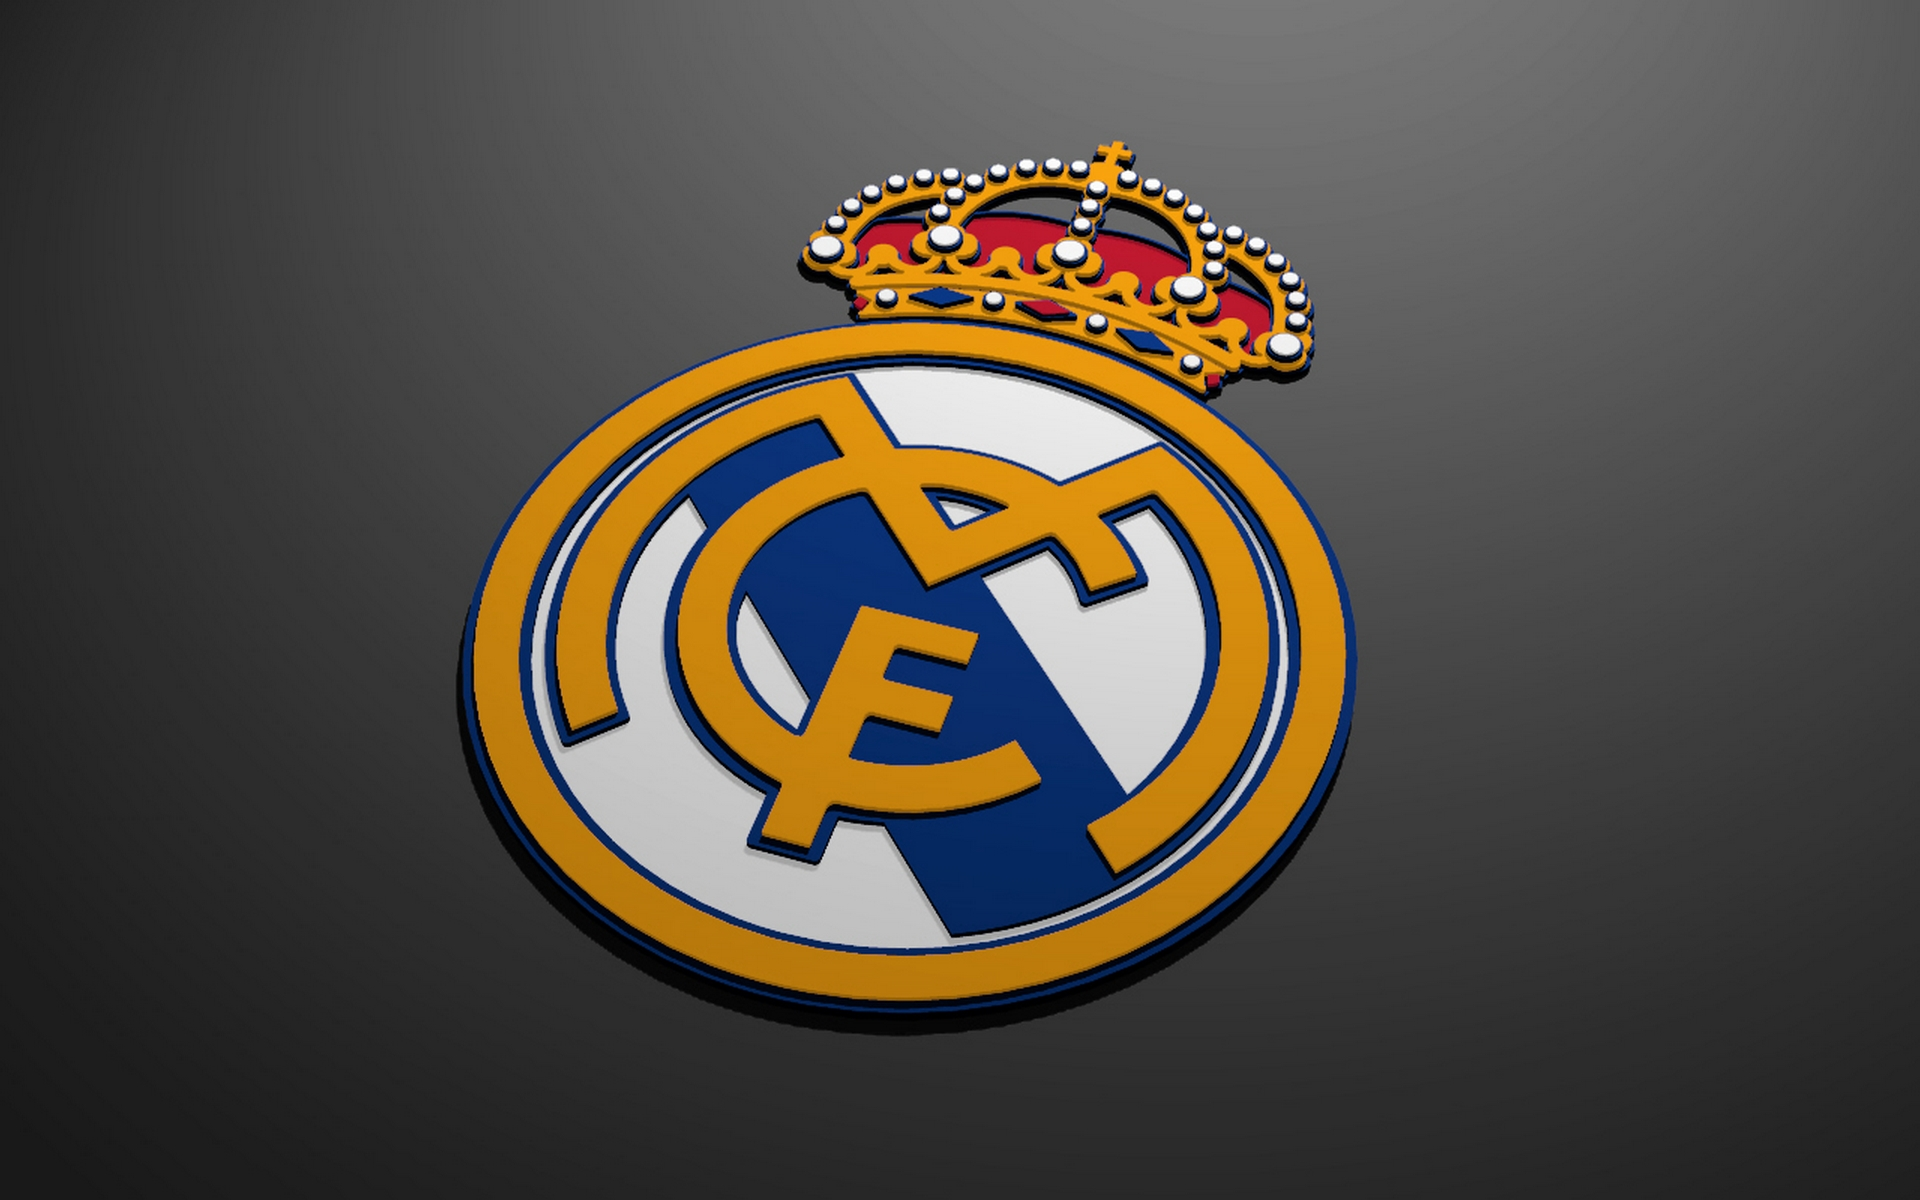 1920x1200 - Real Madrid C.F. Wallpapers 15